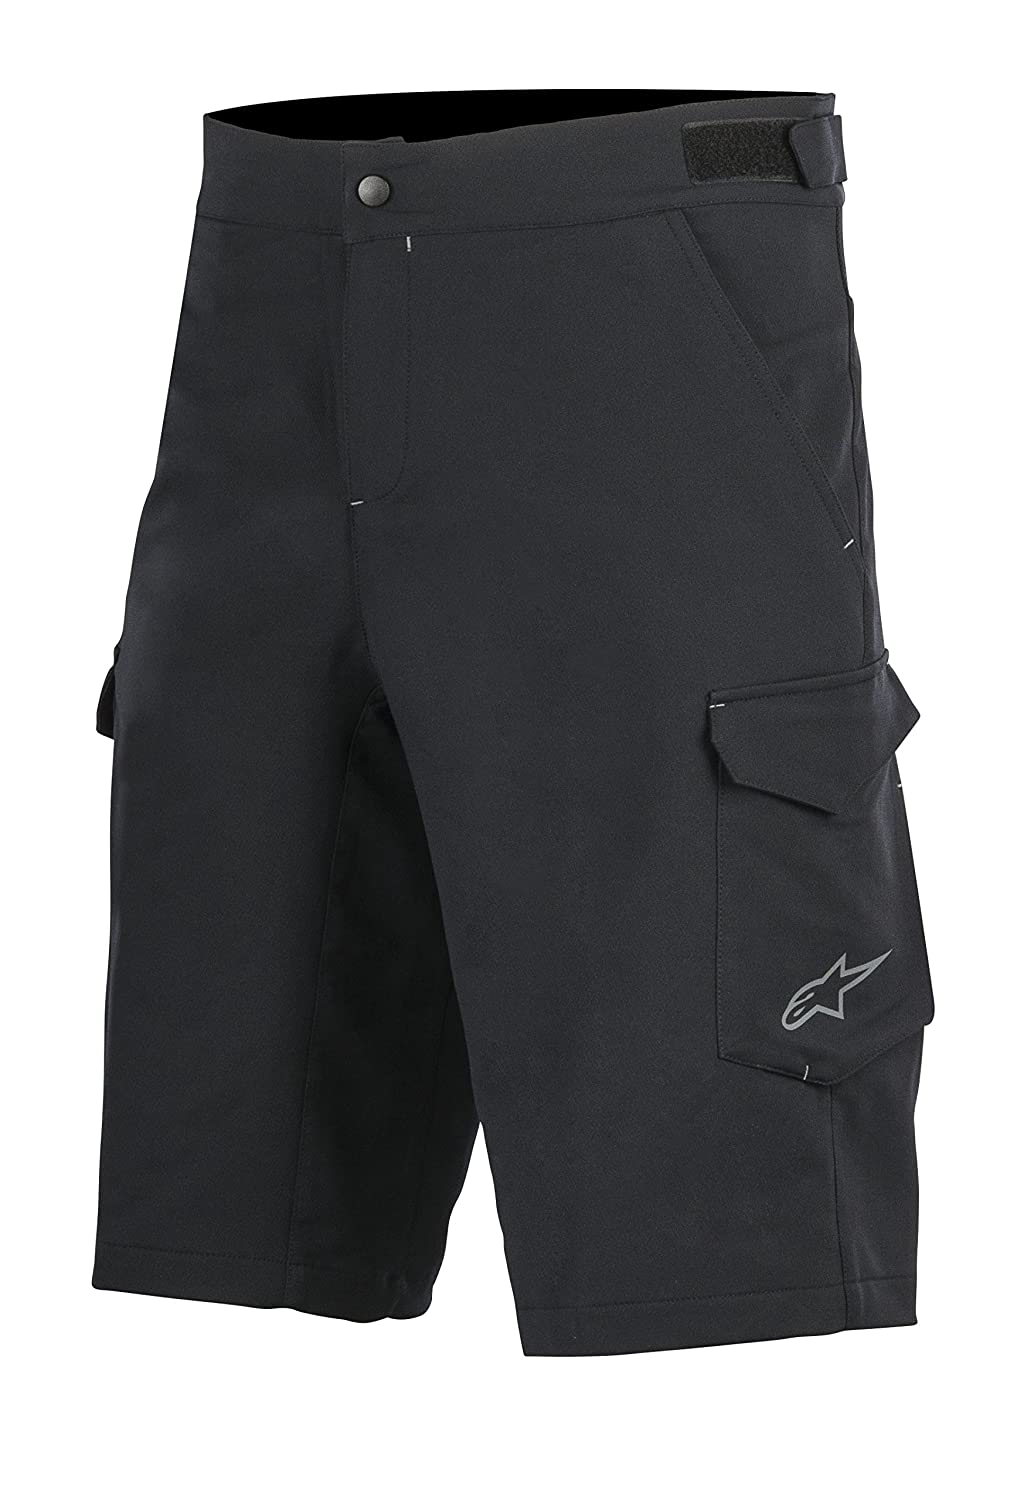 Alpinestars Herren Shorts Rover 2 Basis